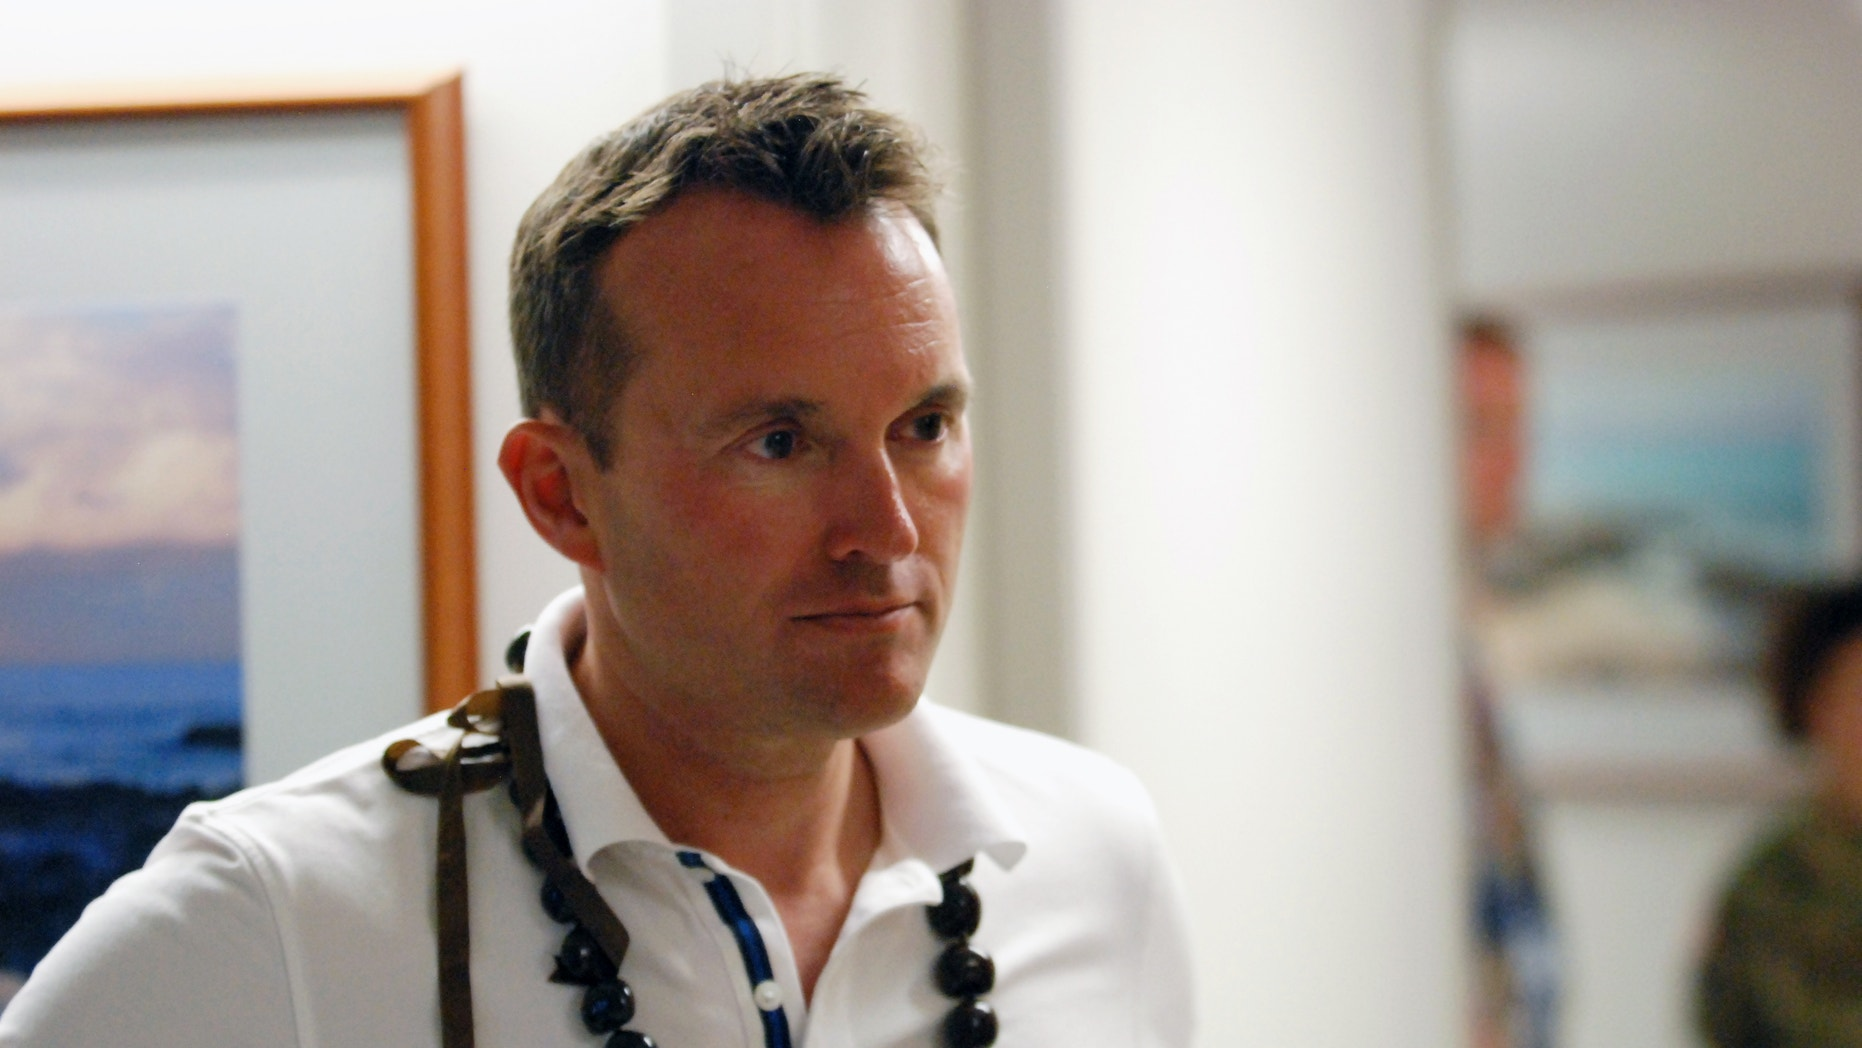 Secretary of the Army Eric Fanning tours Tripler Army Medical Center in Honolulu, Wednesday, July 27, 2016. Fanning says the Army is paying more attention to behavioral health and making sure anyone who's injured while defending the nation gets the treatment they need. He says the Army and other military branches are conducting research into how military deployment effects anger. (AP Photo/Cathy Bussewitz)